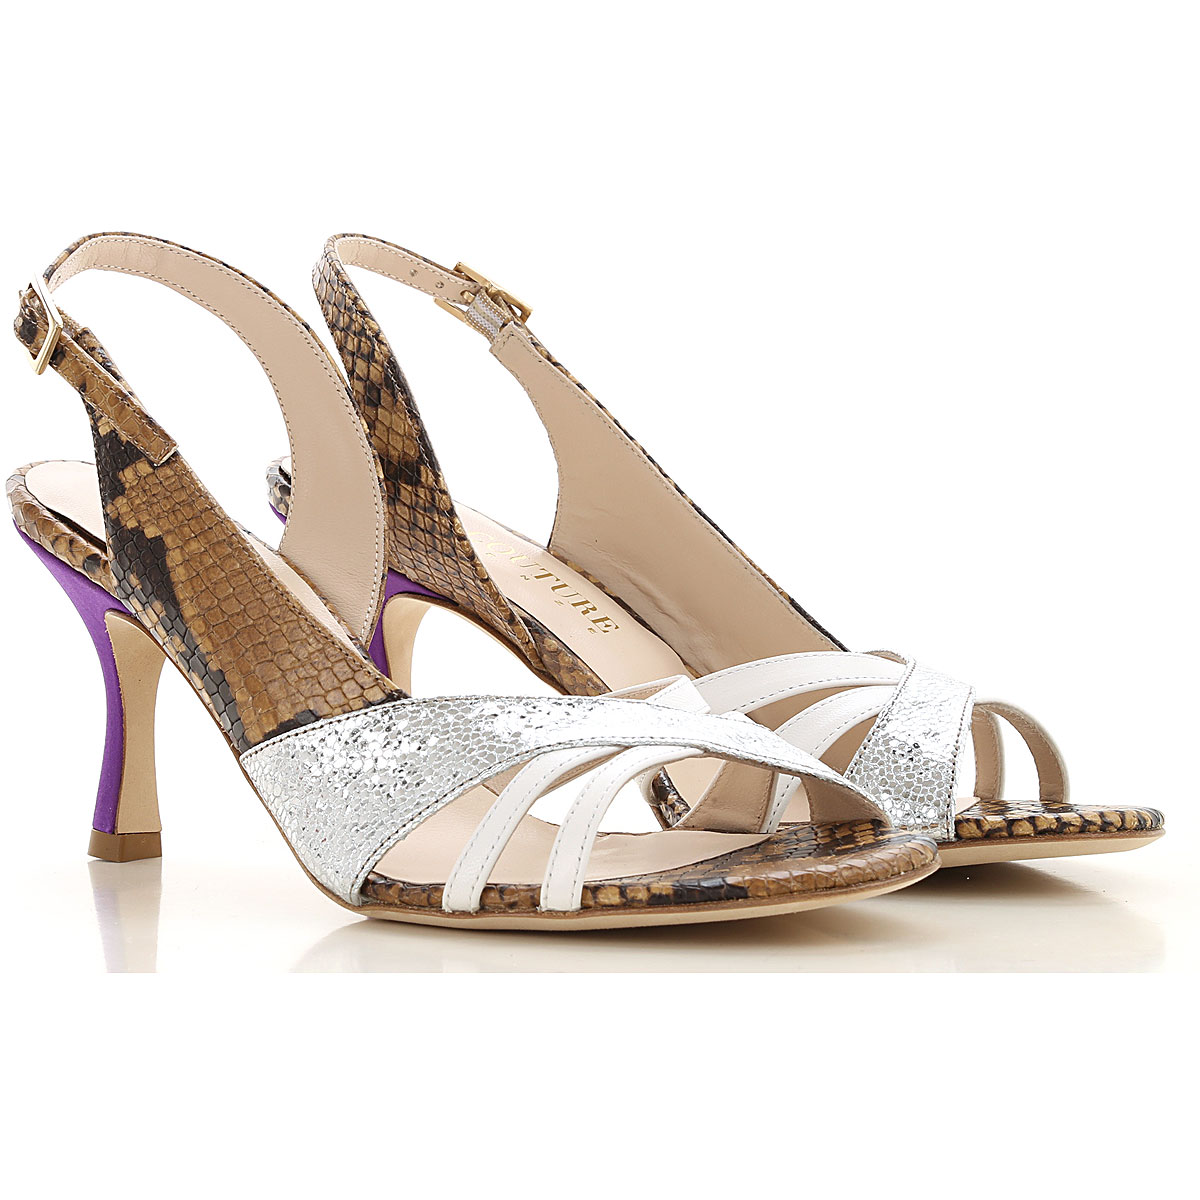 Gia Couture Sandals for Women On Sale in Outlet, Python Beige/Brown, Leather, 2019, 10 6 7 8 9